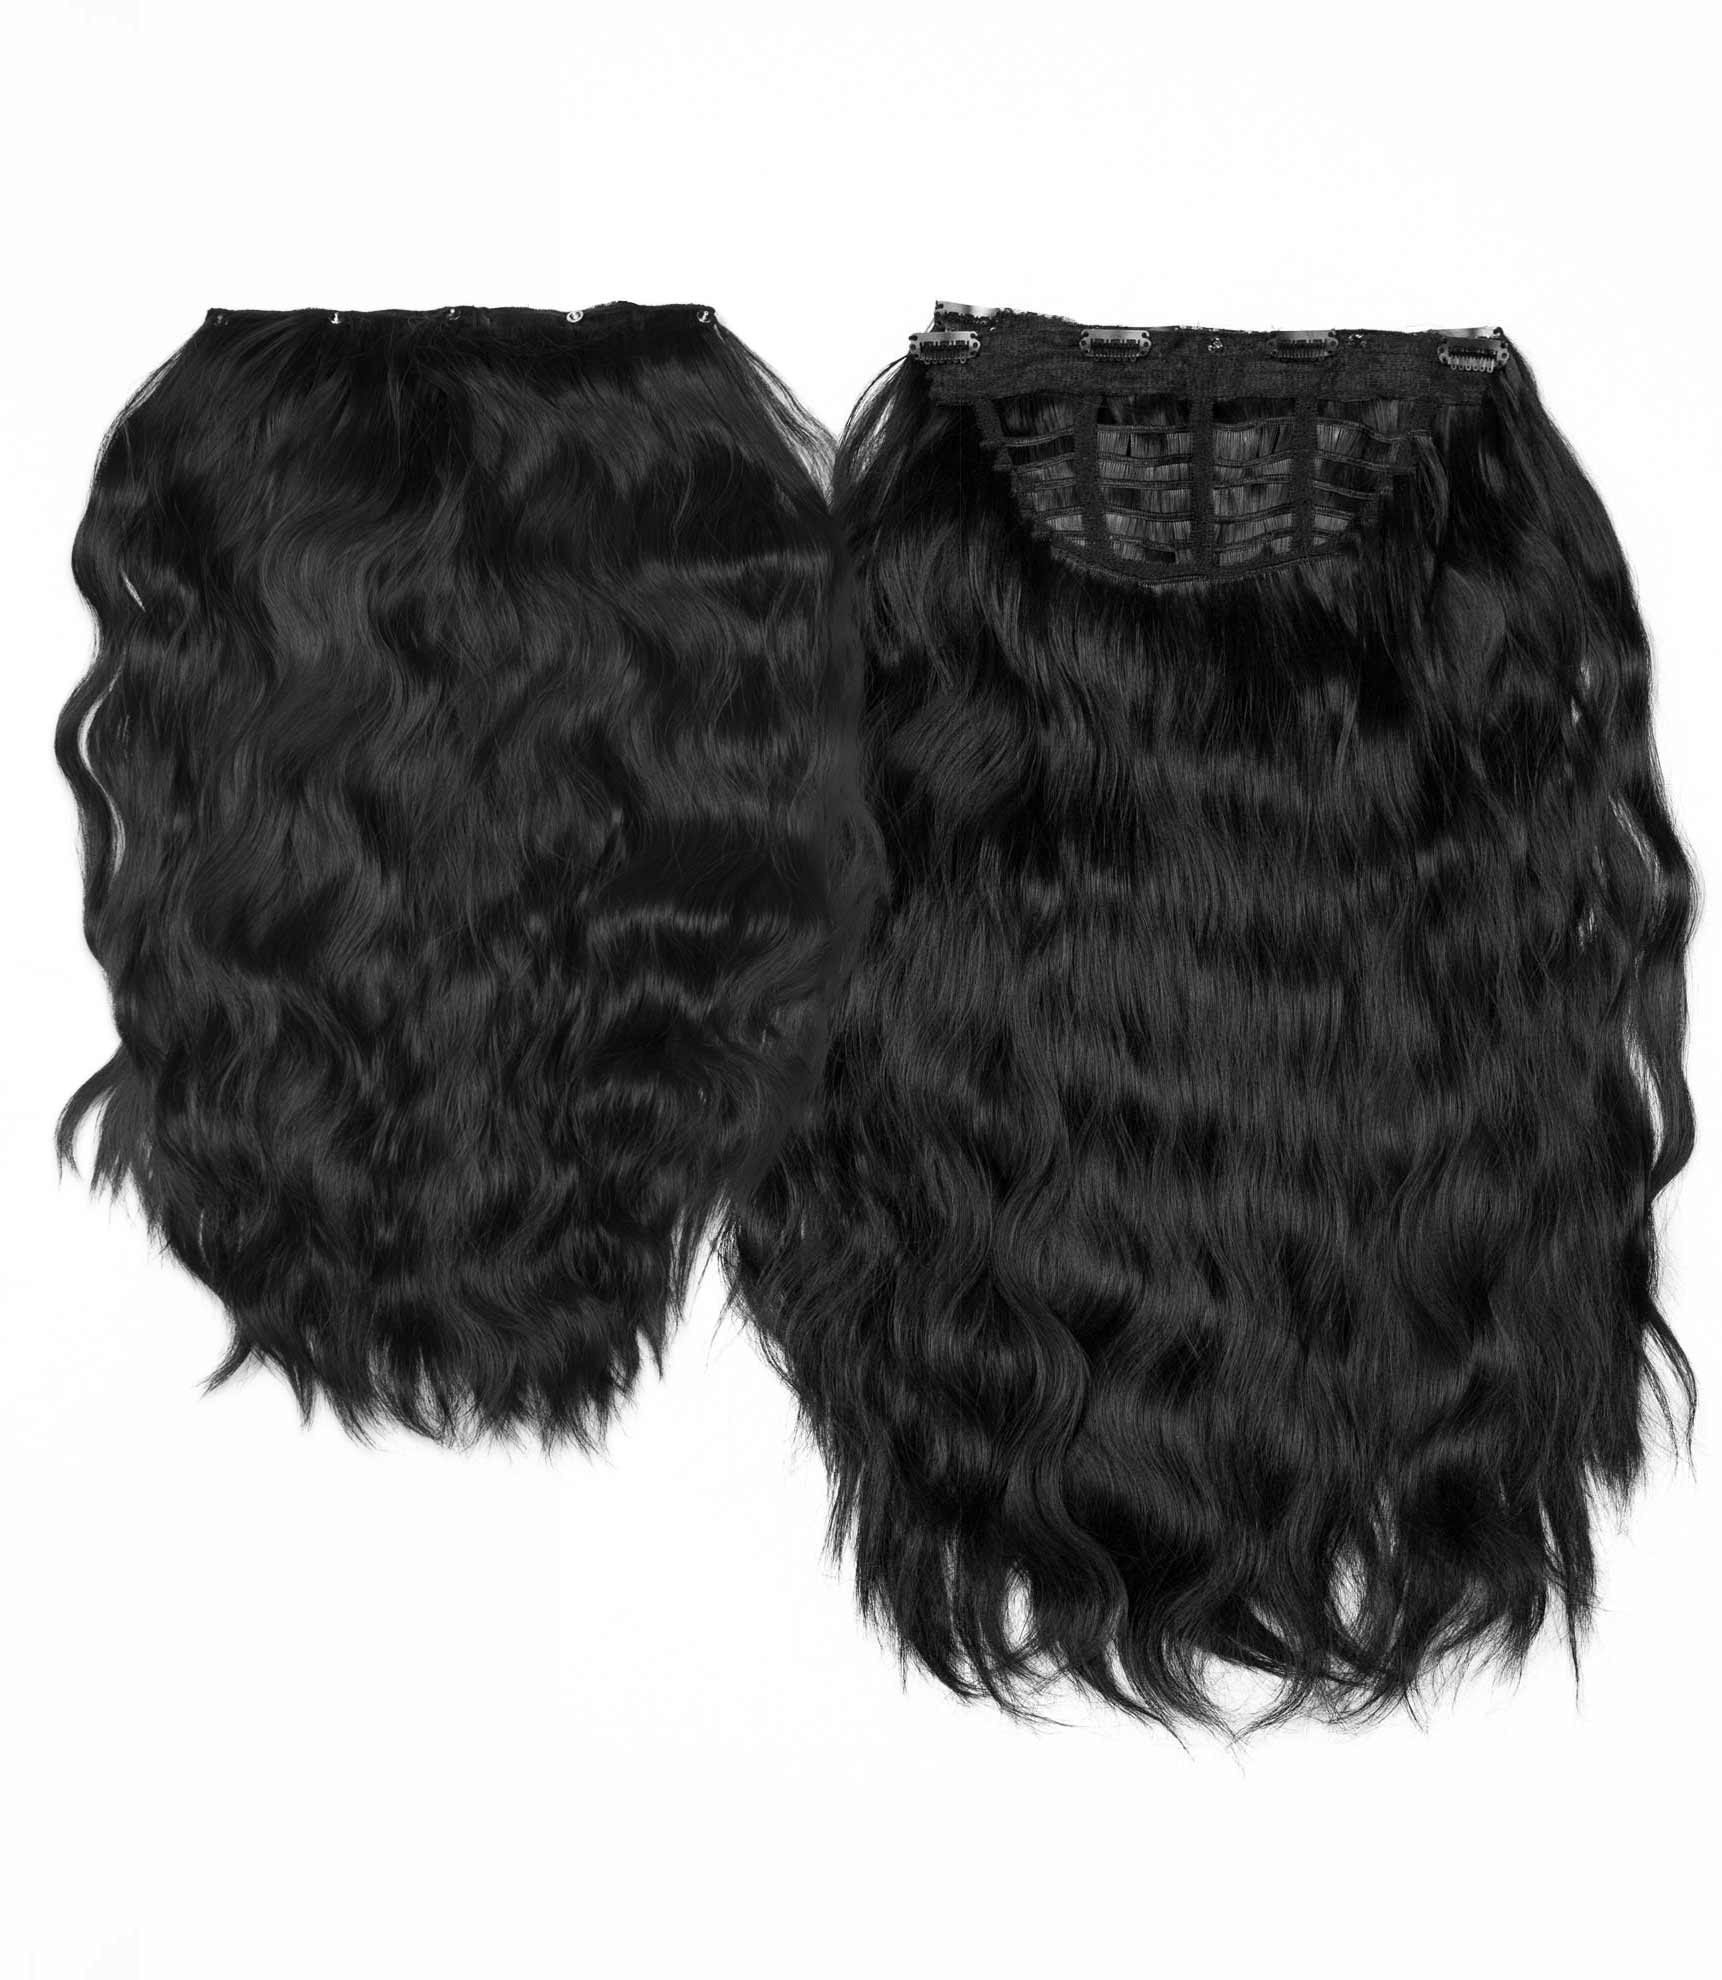 Charlotte's Miracle Makeover - Set Of 2 - Black